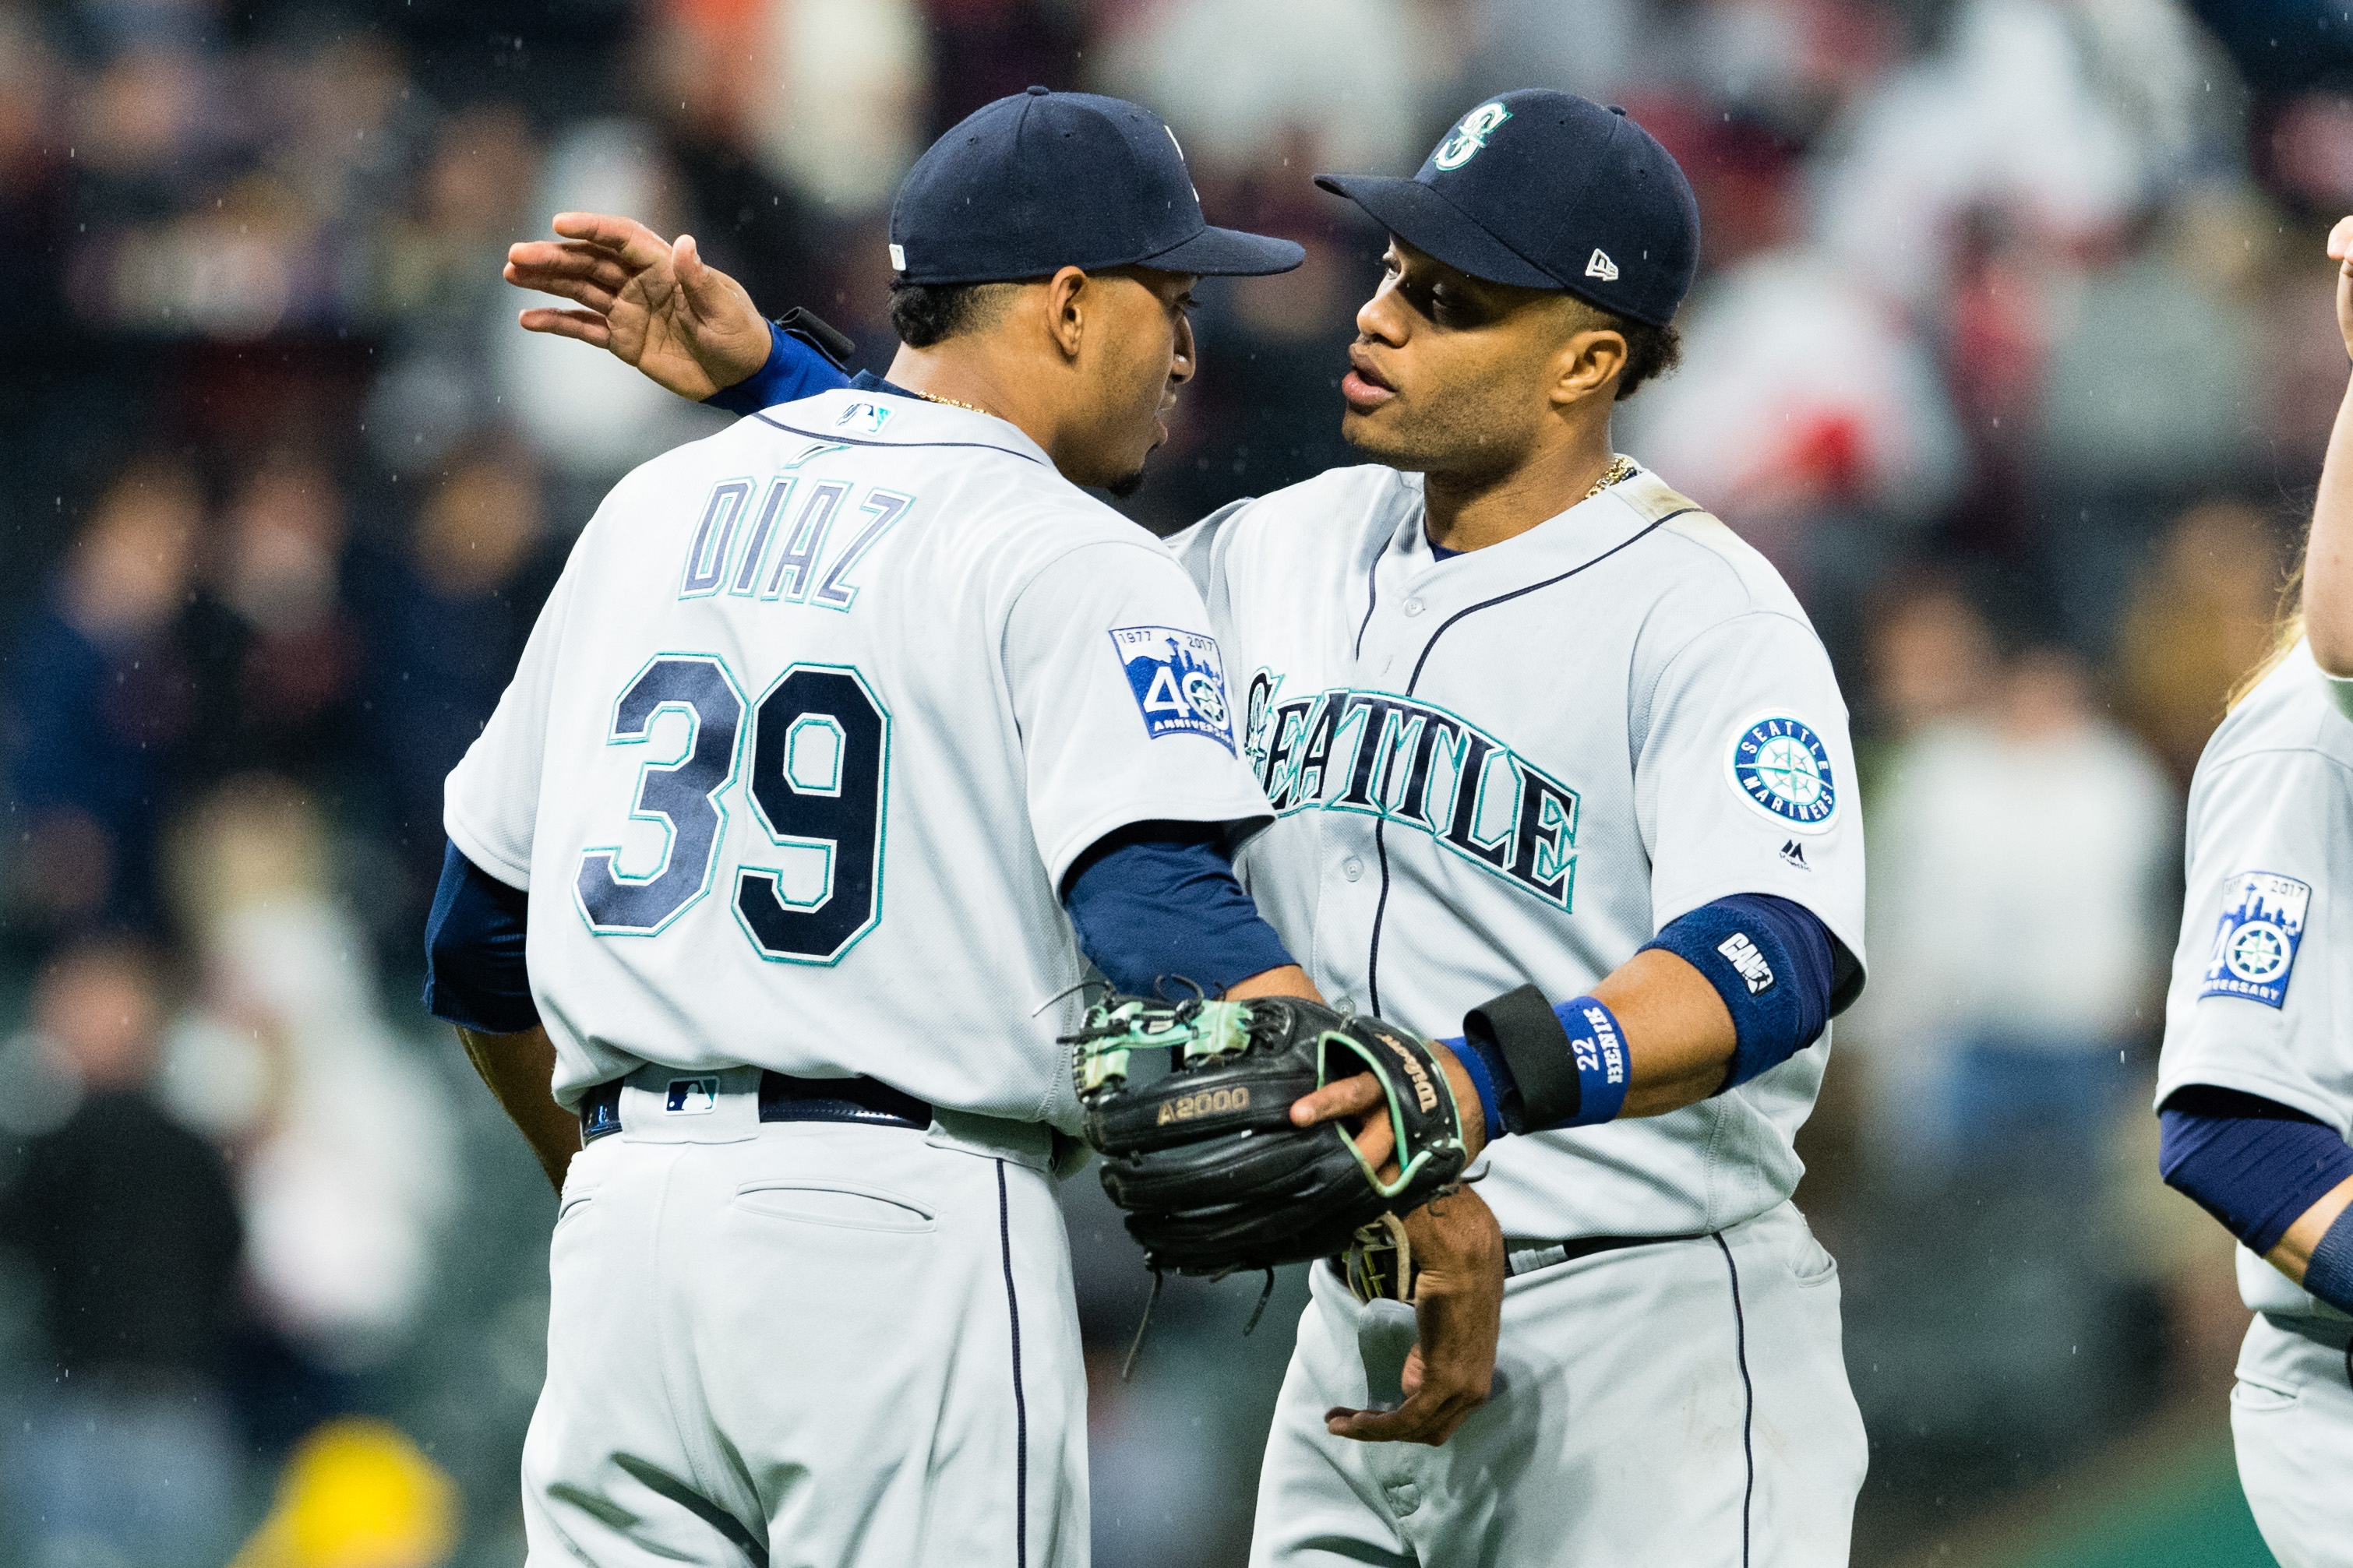 The Mets have added Robinson Cano and Edwin Diaz. They can't stop there.